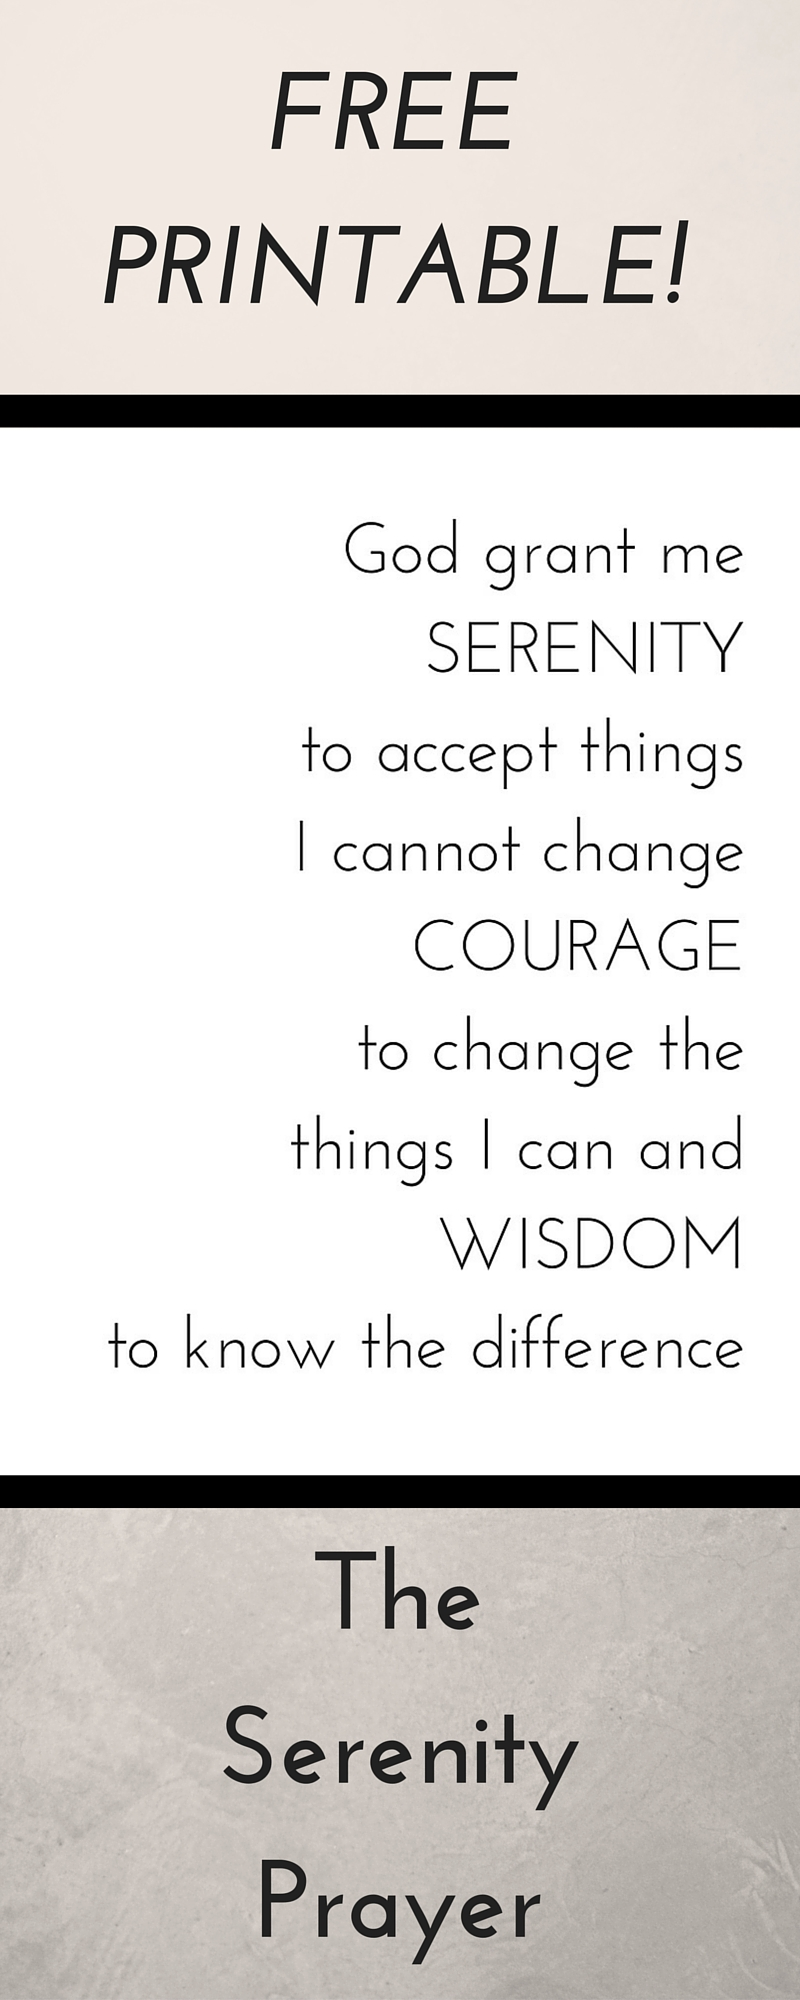 image regarding Prayer Printable named Serenity Prayer Printable - The Tourists Nest